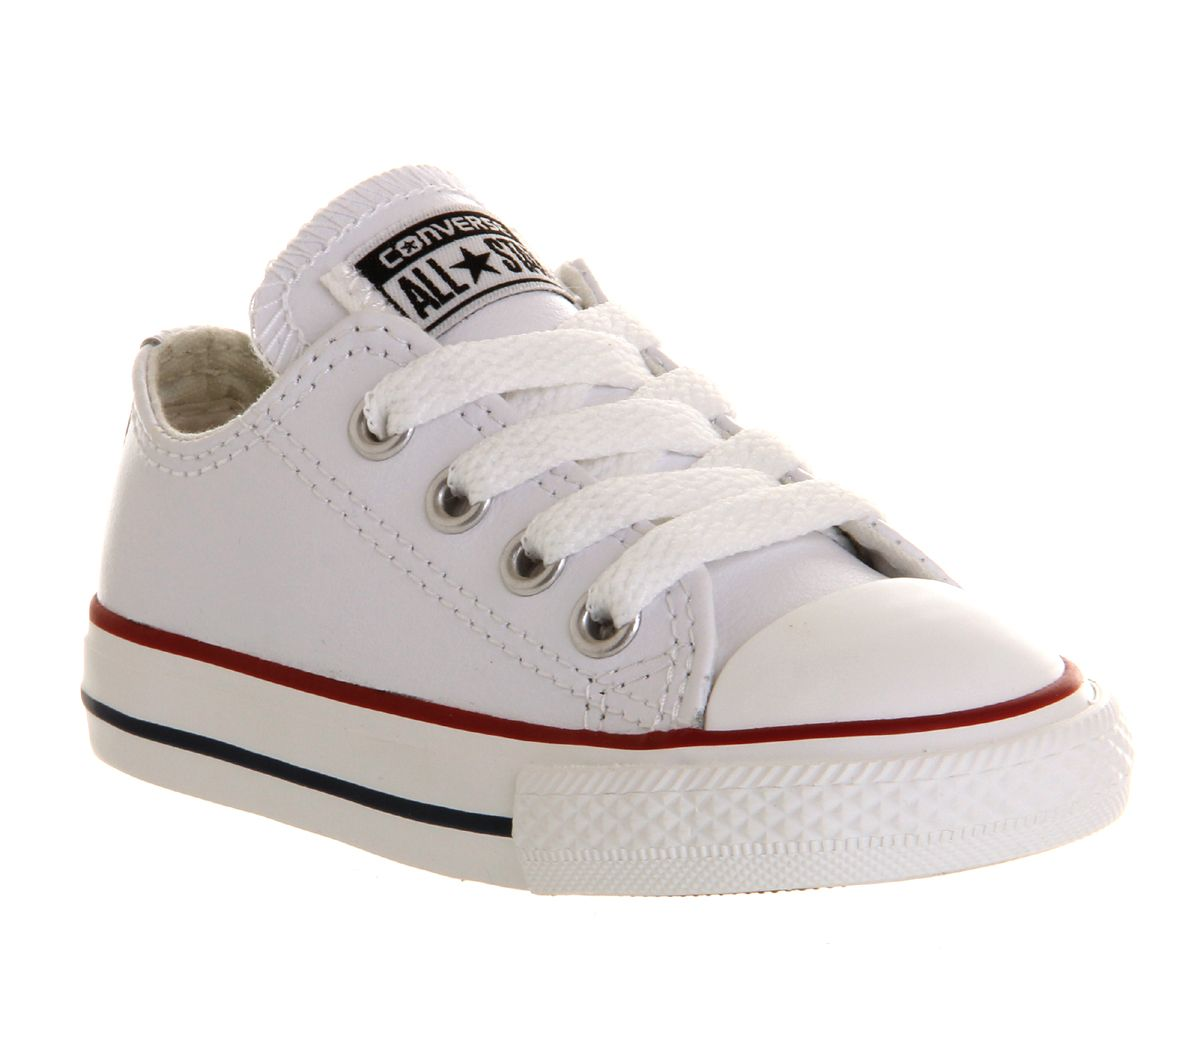 Converse All Star Low Infant Shoes Optical White Leather - Unisex